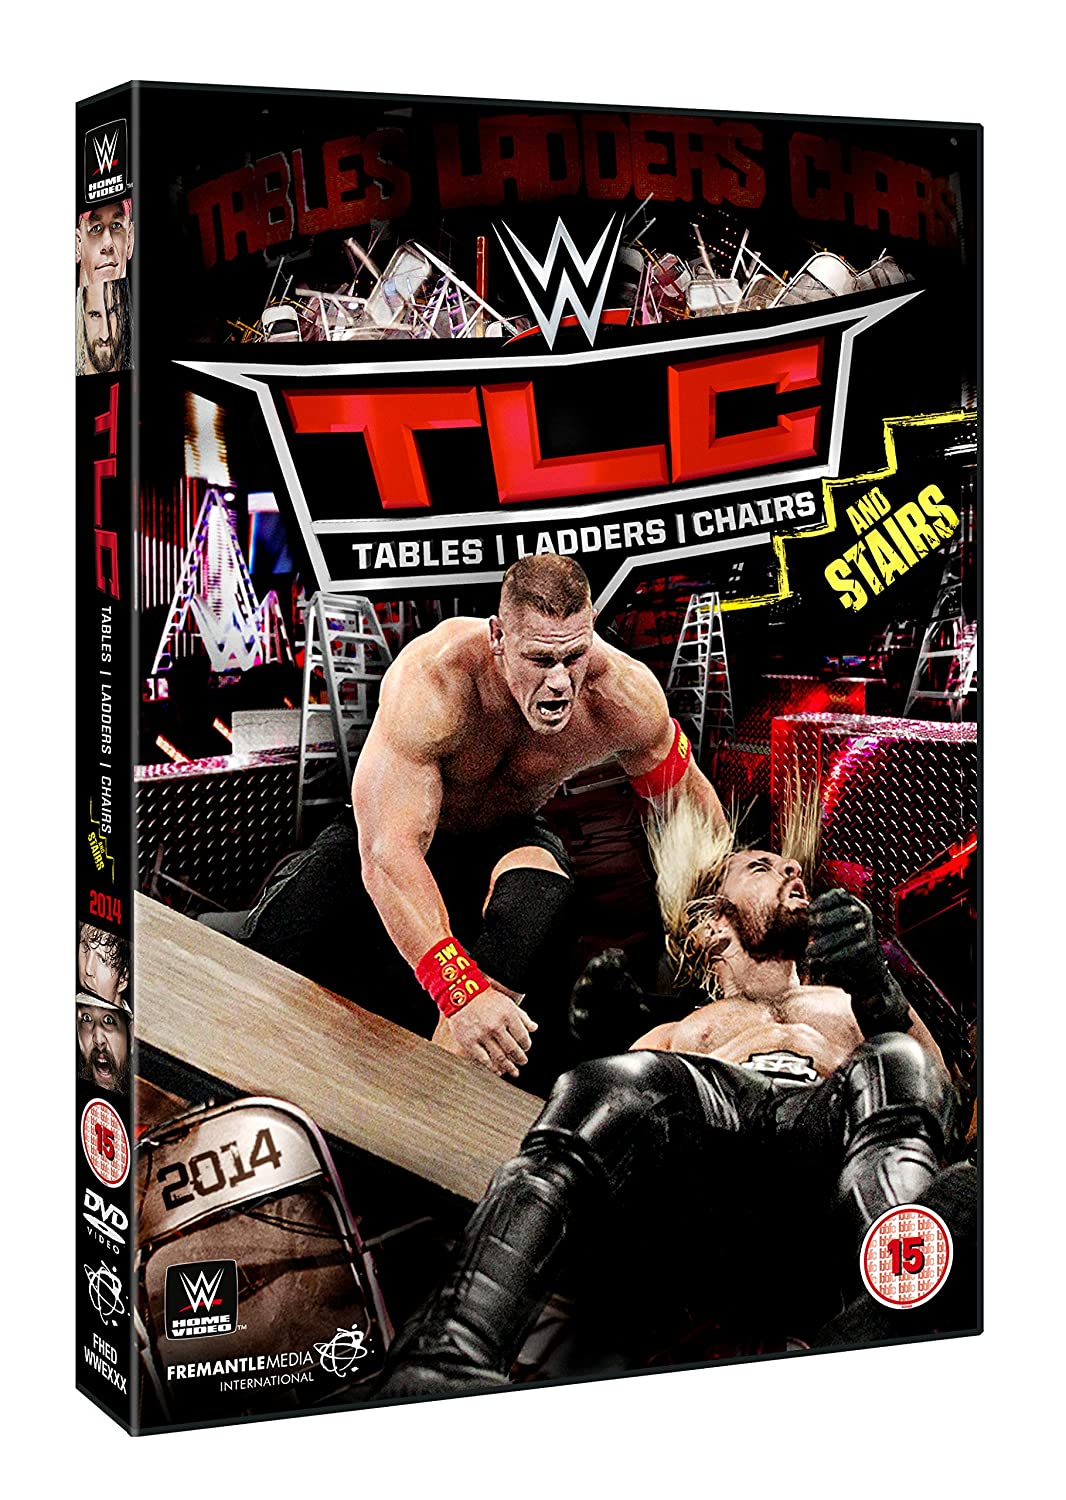 Wwe tables ladders and chairs 2013 poster - Wwe Tlc Tables Ladders Chairs 2014 Dvd Amazon Co Uk John Cena Dolph Ziggler Seth Rollins Dvd Blu Ray